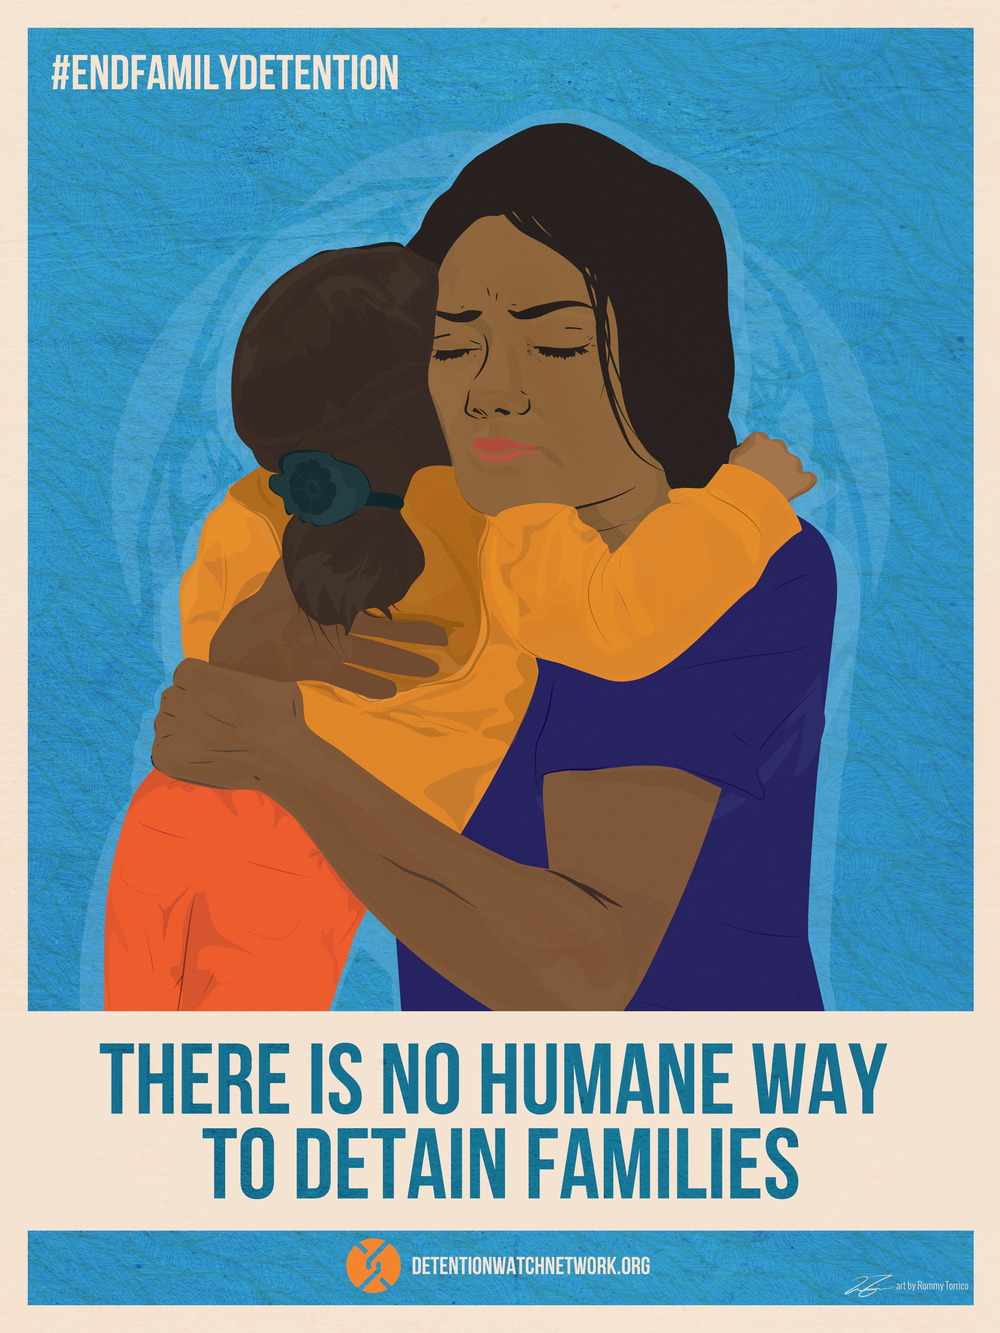 #EndFamilyDetention